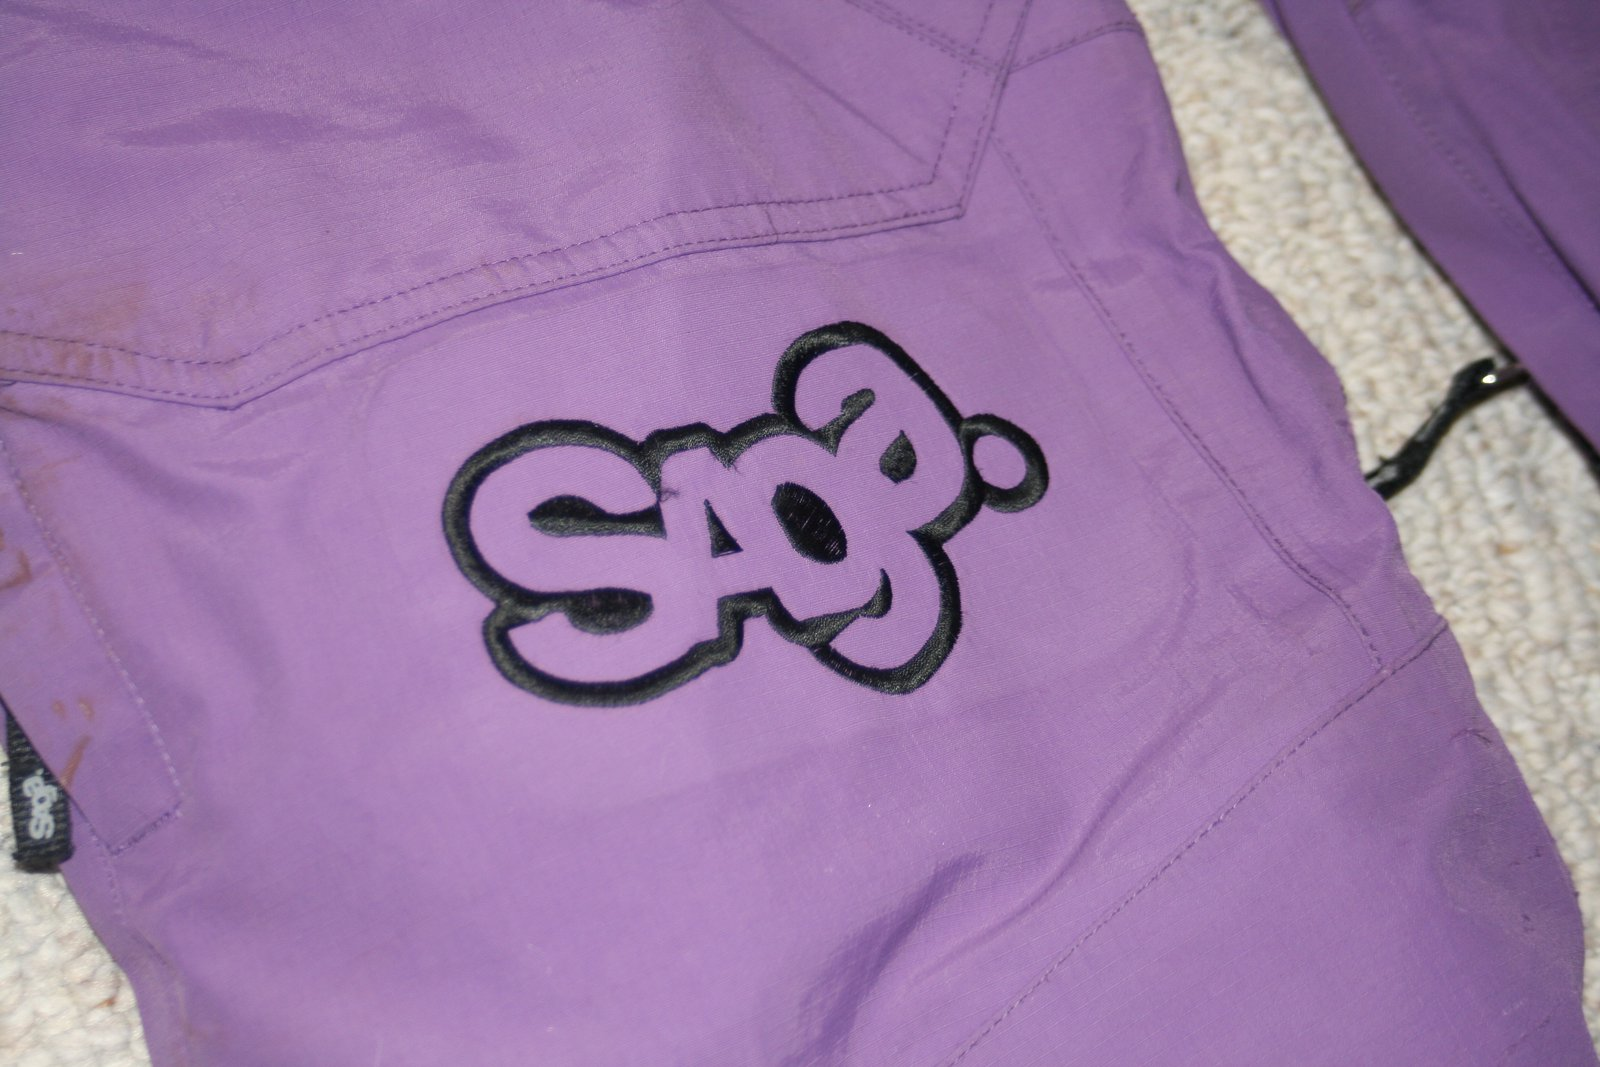 logo on SAGA pants